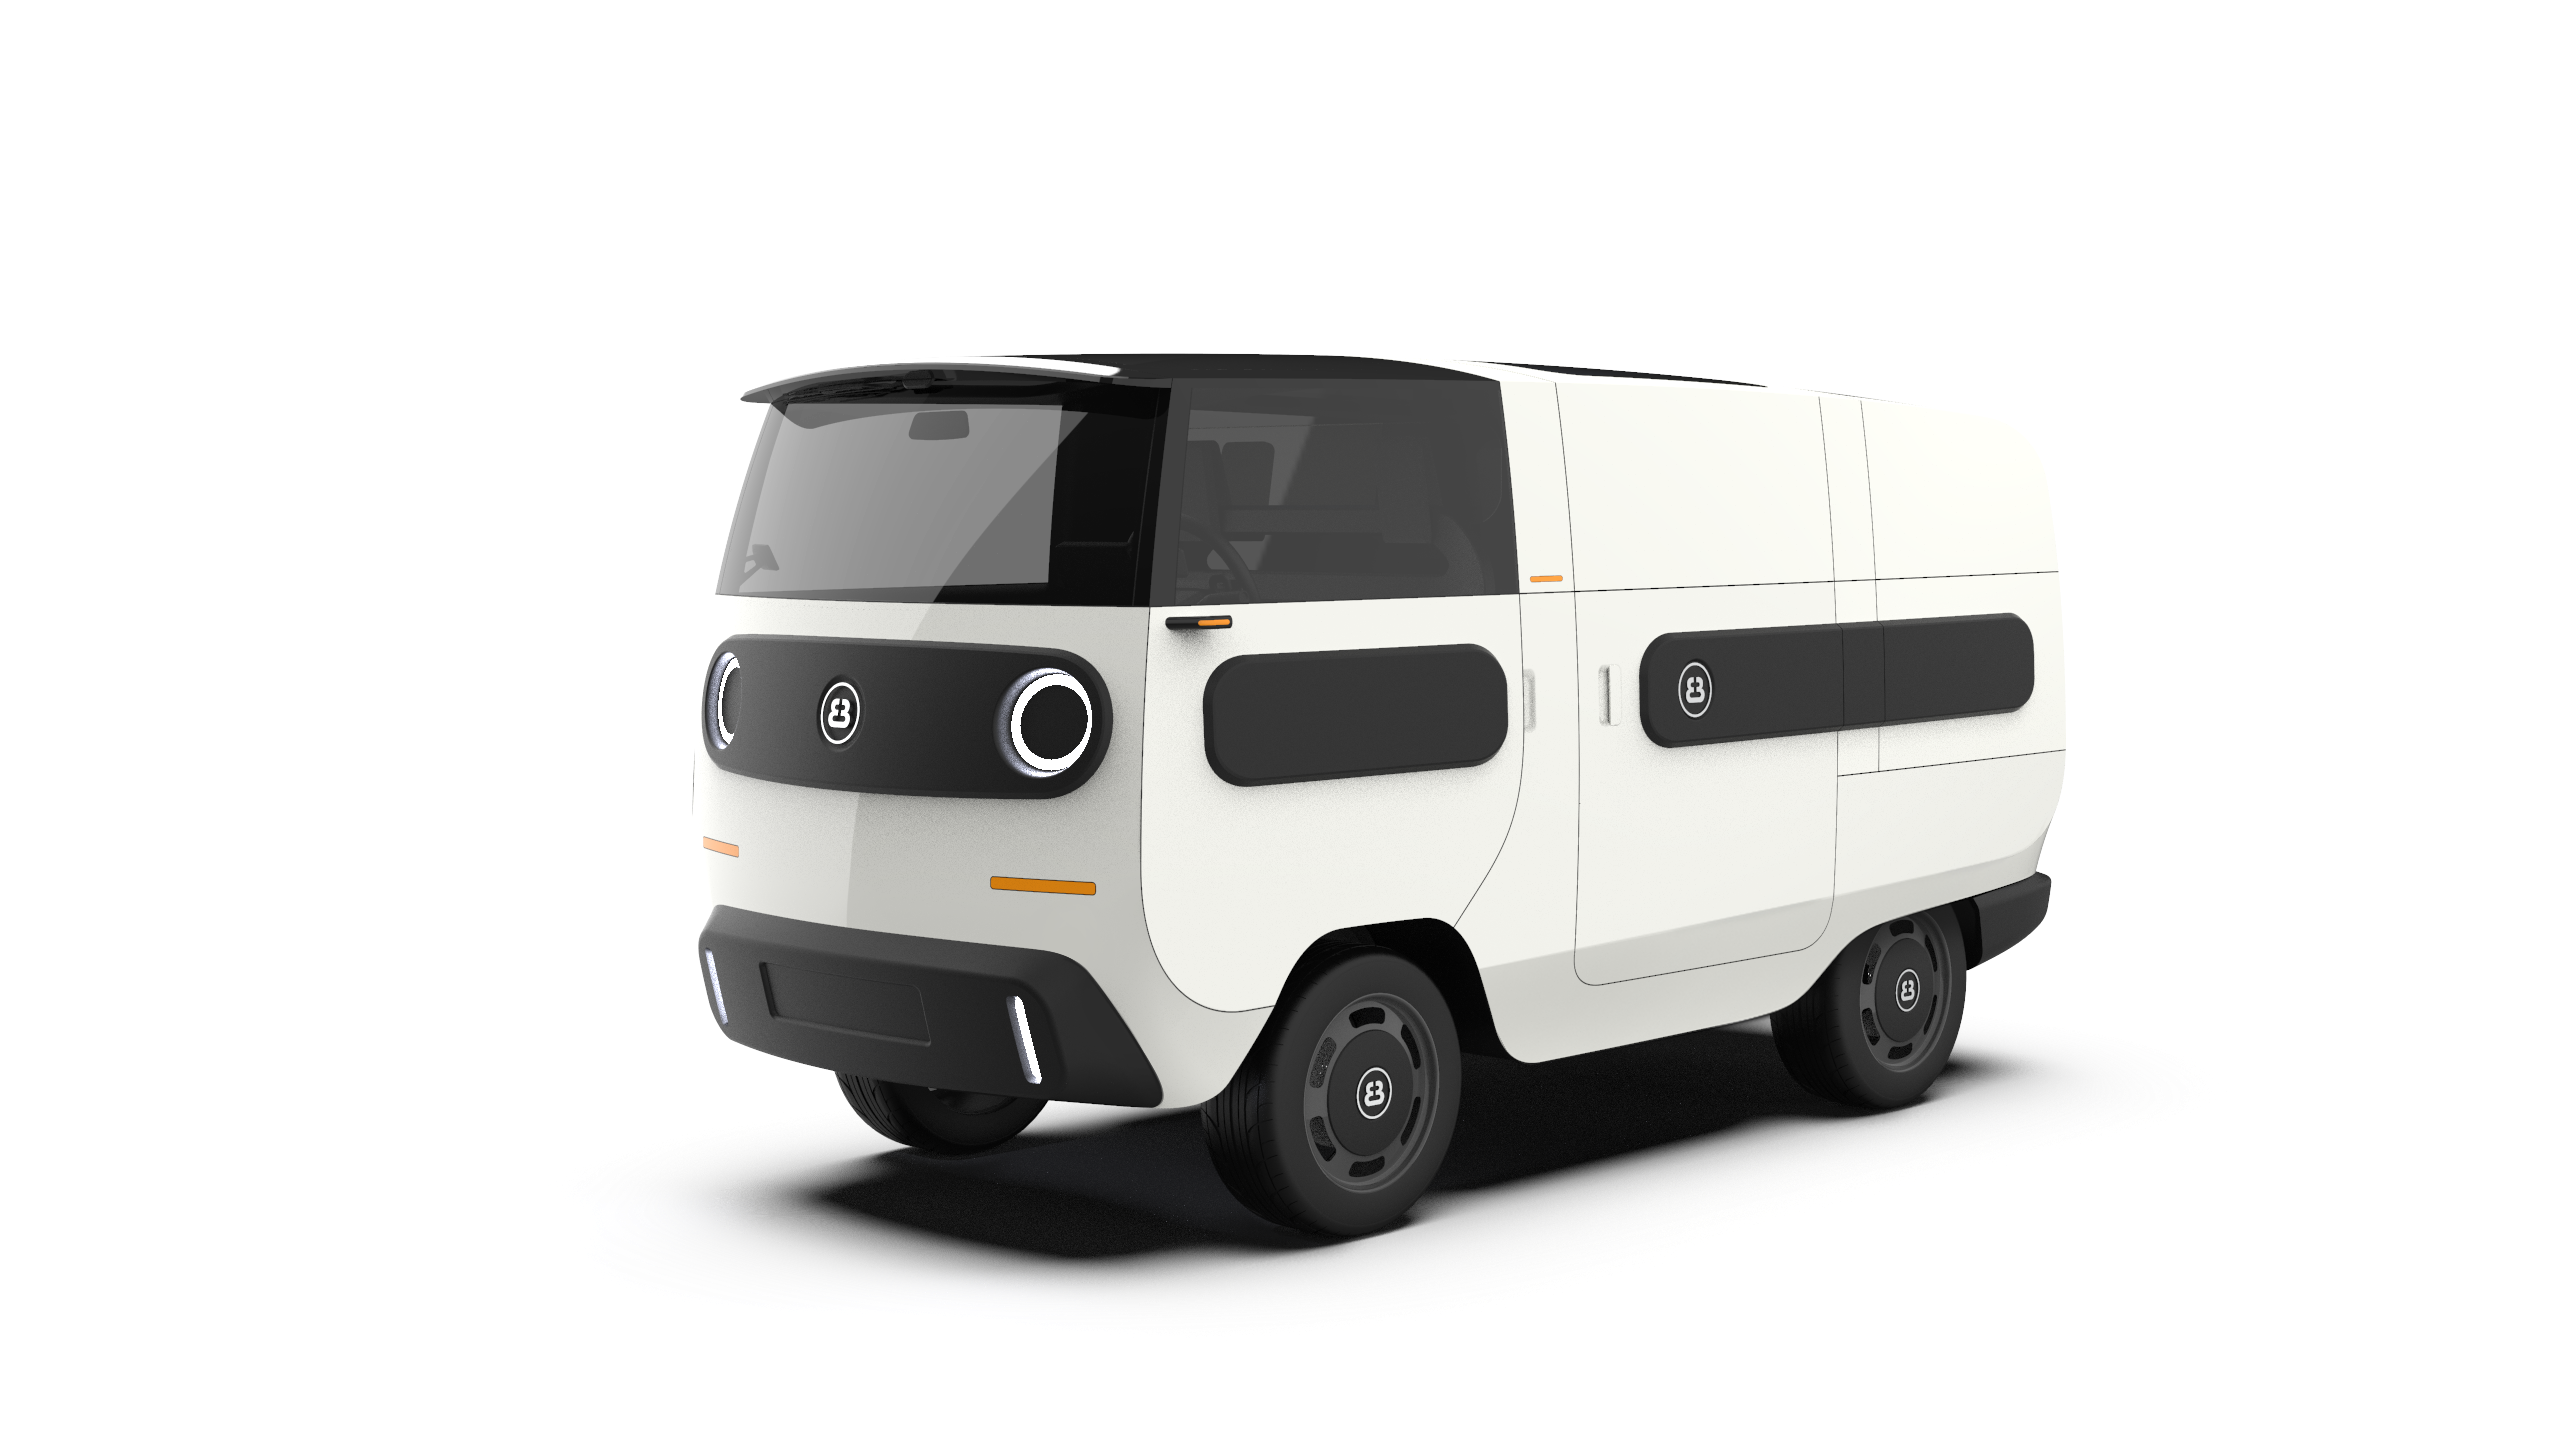 eBussy is an electric camper and pickup truck